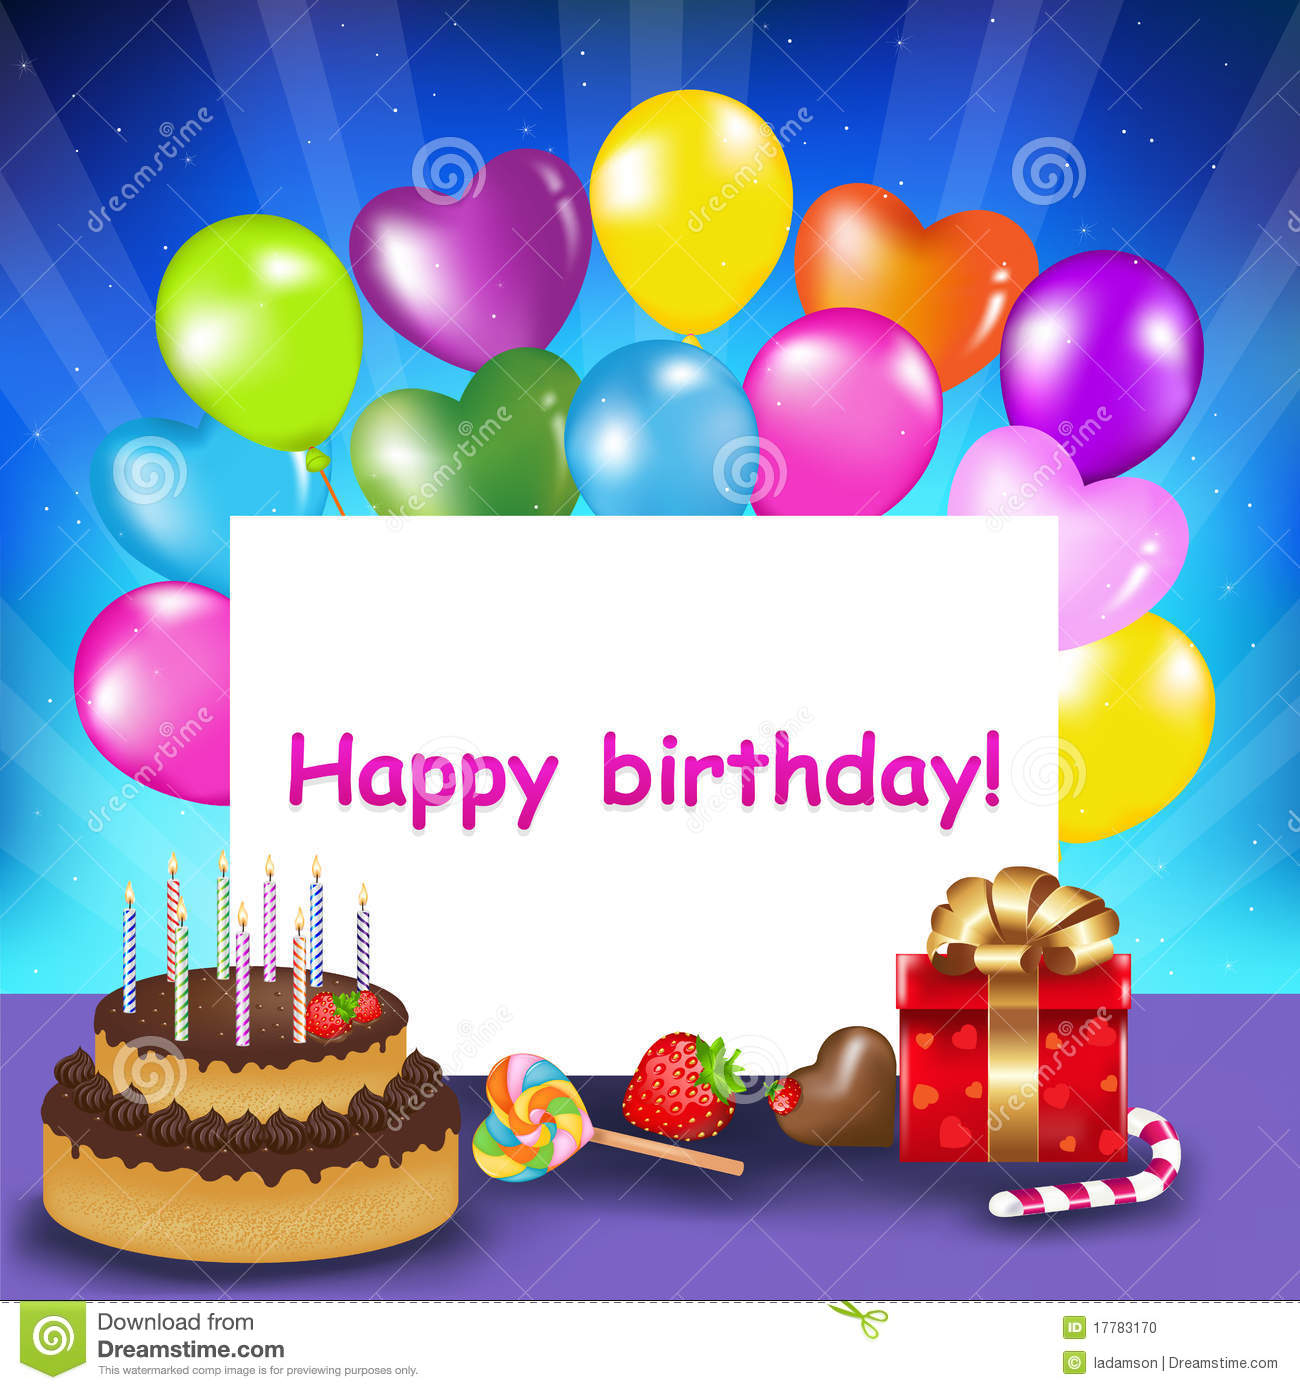 www happy birthday card pictures com ; Stock-Photo-Happy-Birthday-Amazing-Happy-Birthday-Card-Images